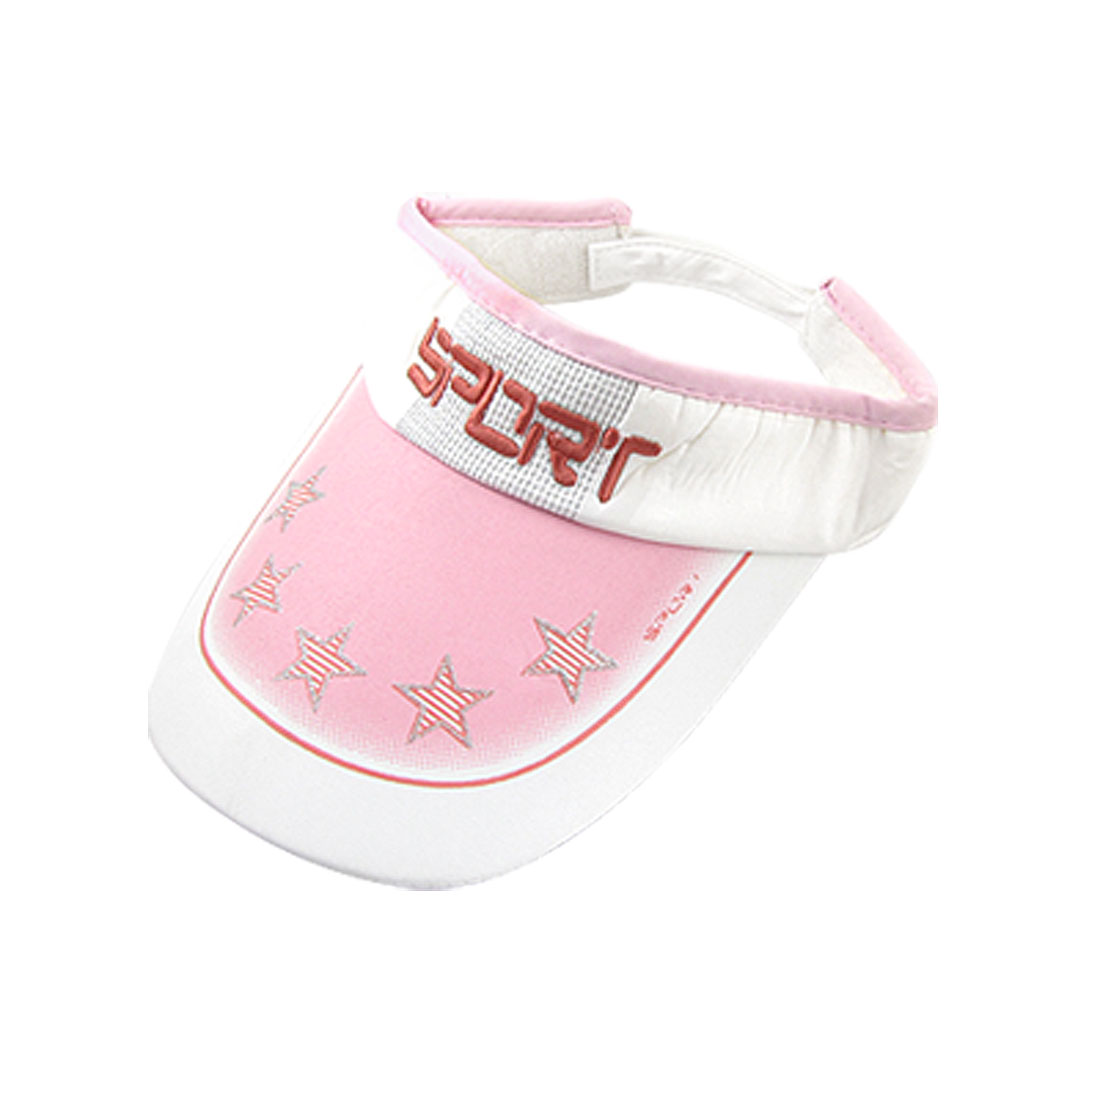 Women Glitter Powder Star Print Adjustable Band White Pink Sun Visor Hat